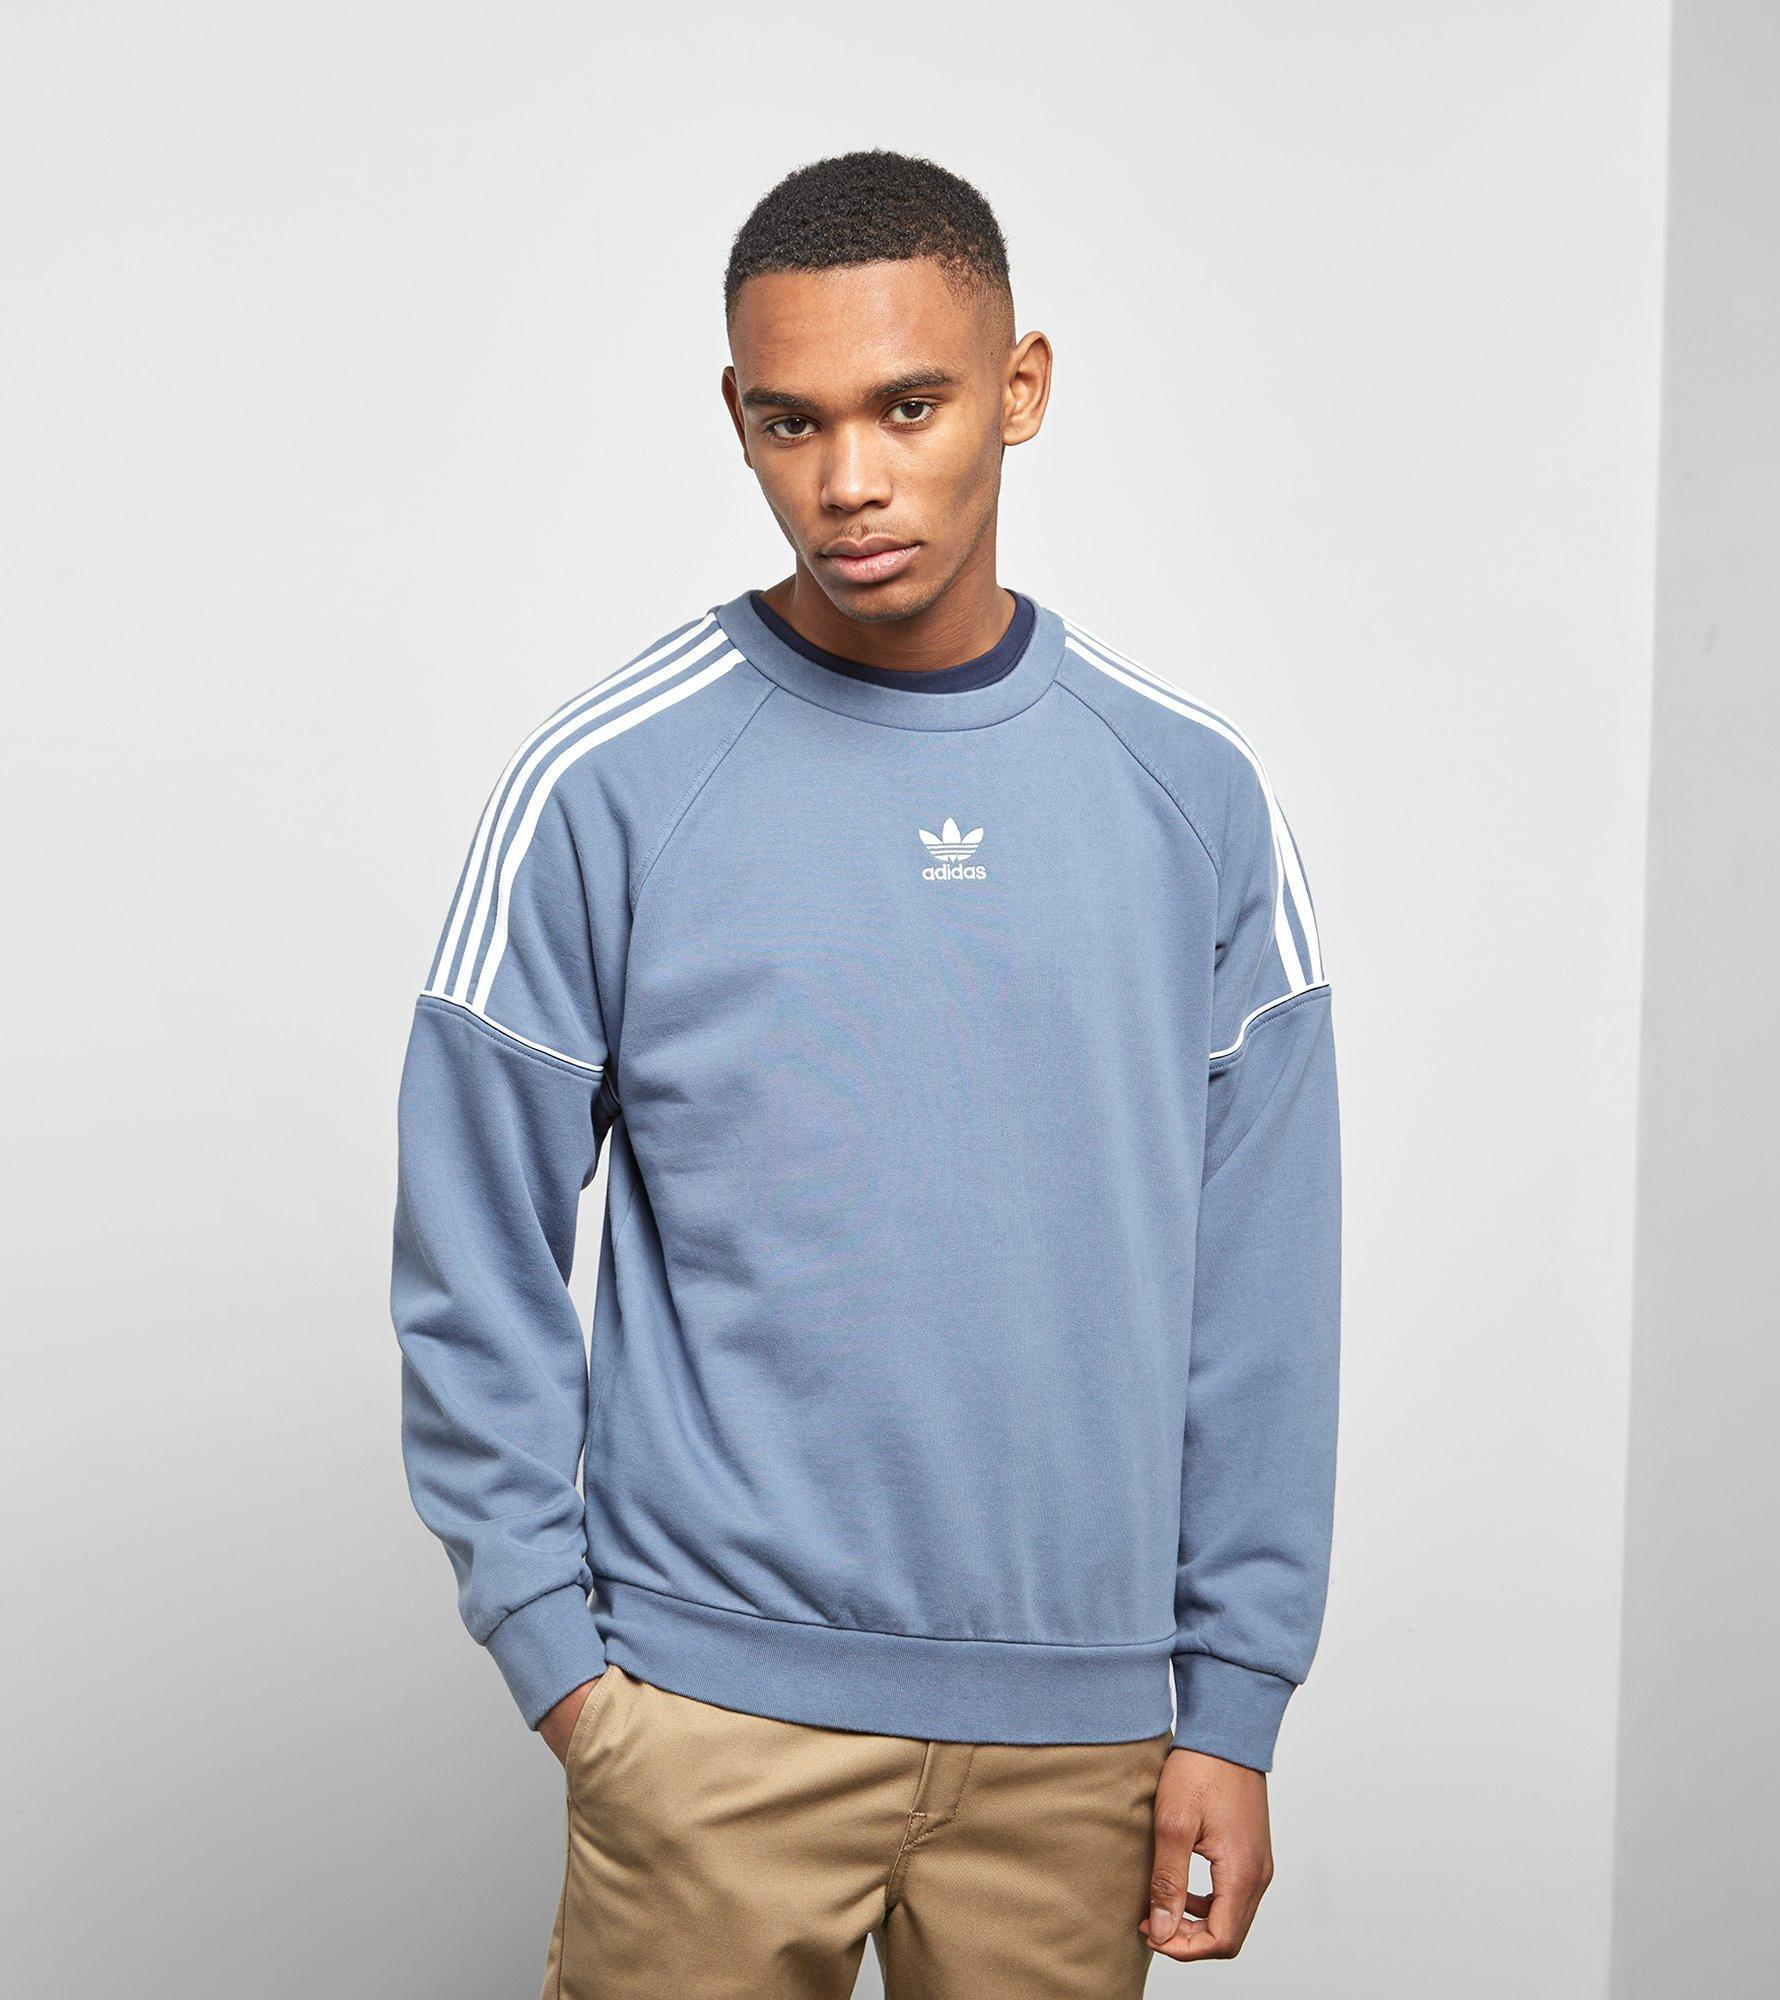 Men Originals Adidas Pipe Lyst Sweatshirt In Crew For Blue z8T7wq